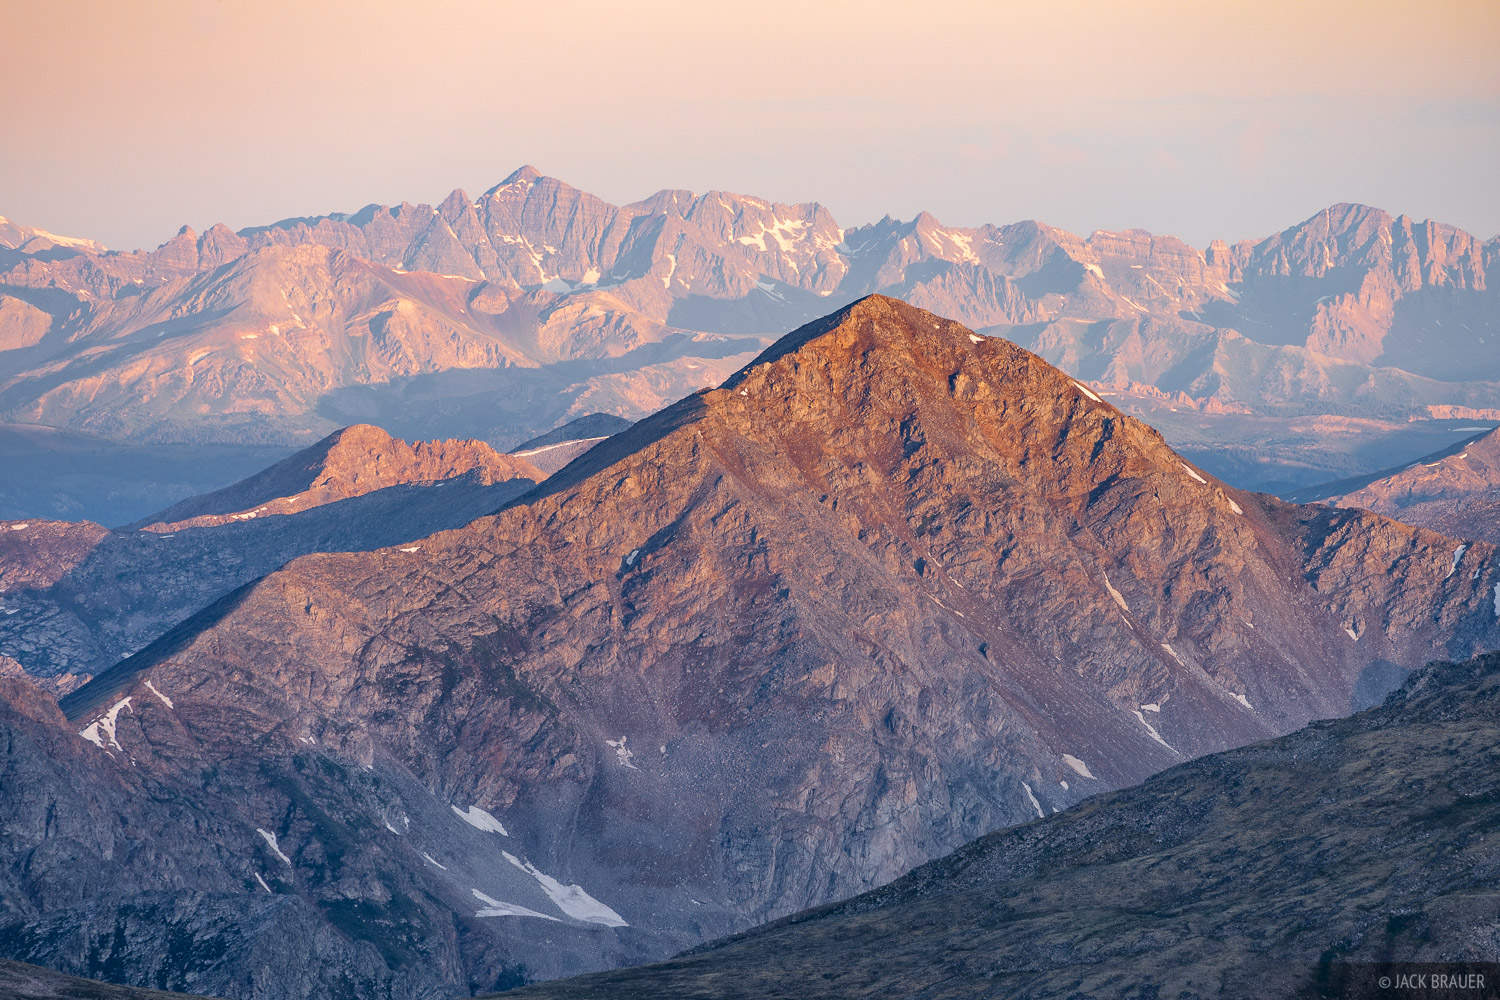 Castle Peak, Collegiate Peaks Wilderness, Colorado, Elk Mountains, Huron Peak, Mount Harvard, Sawatch Range, photo